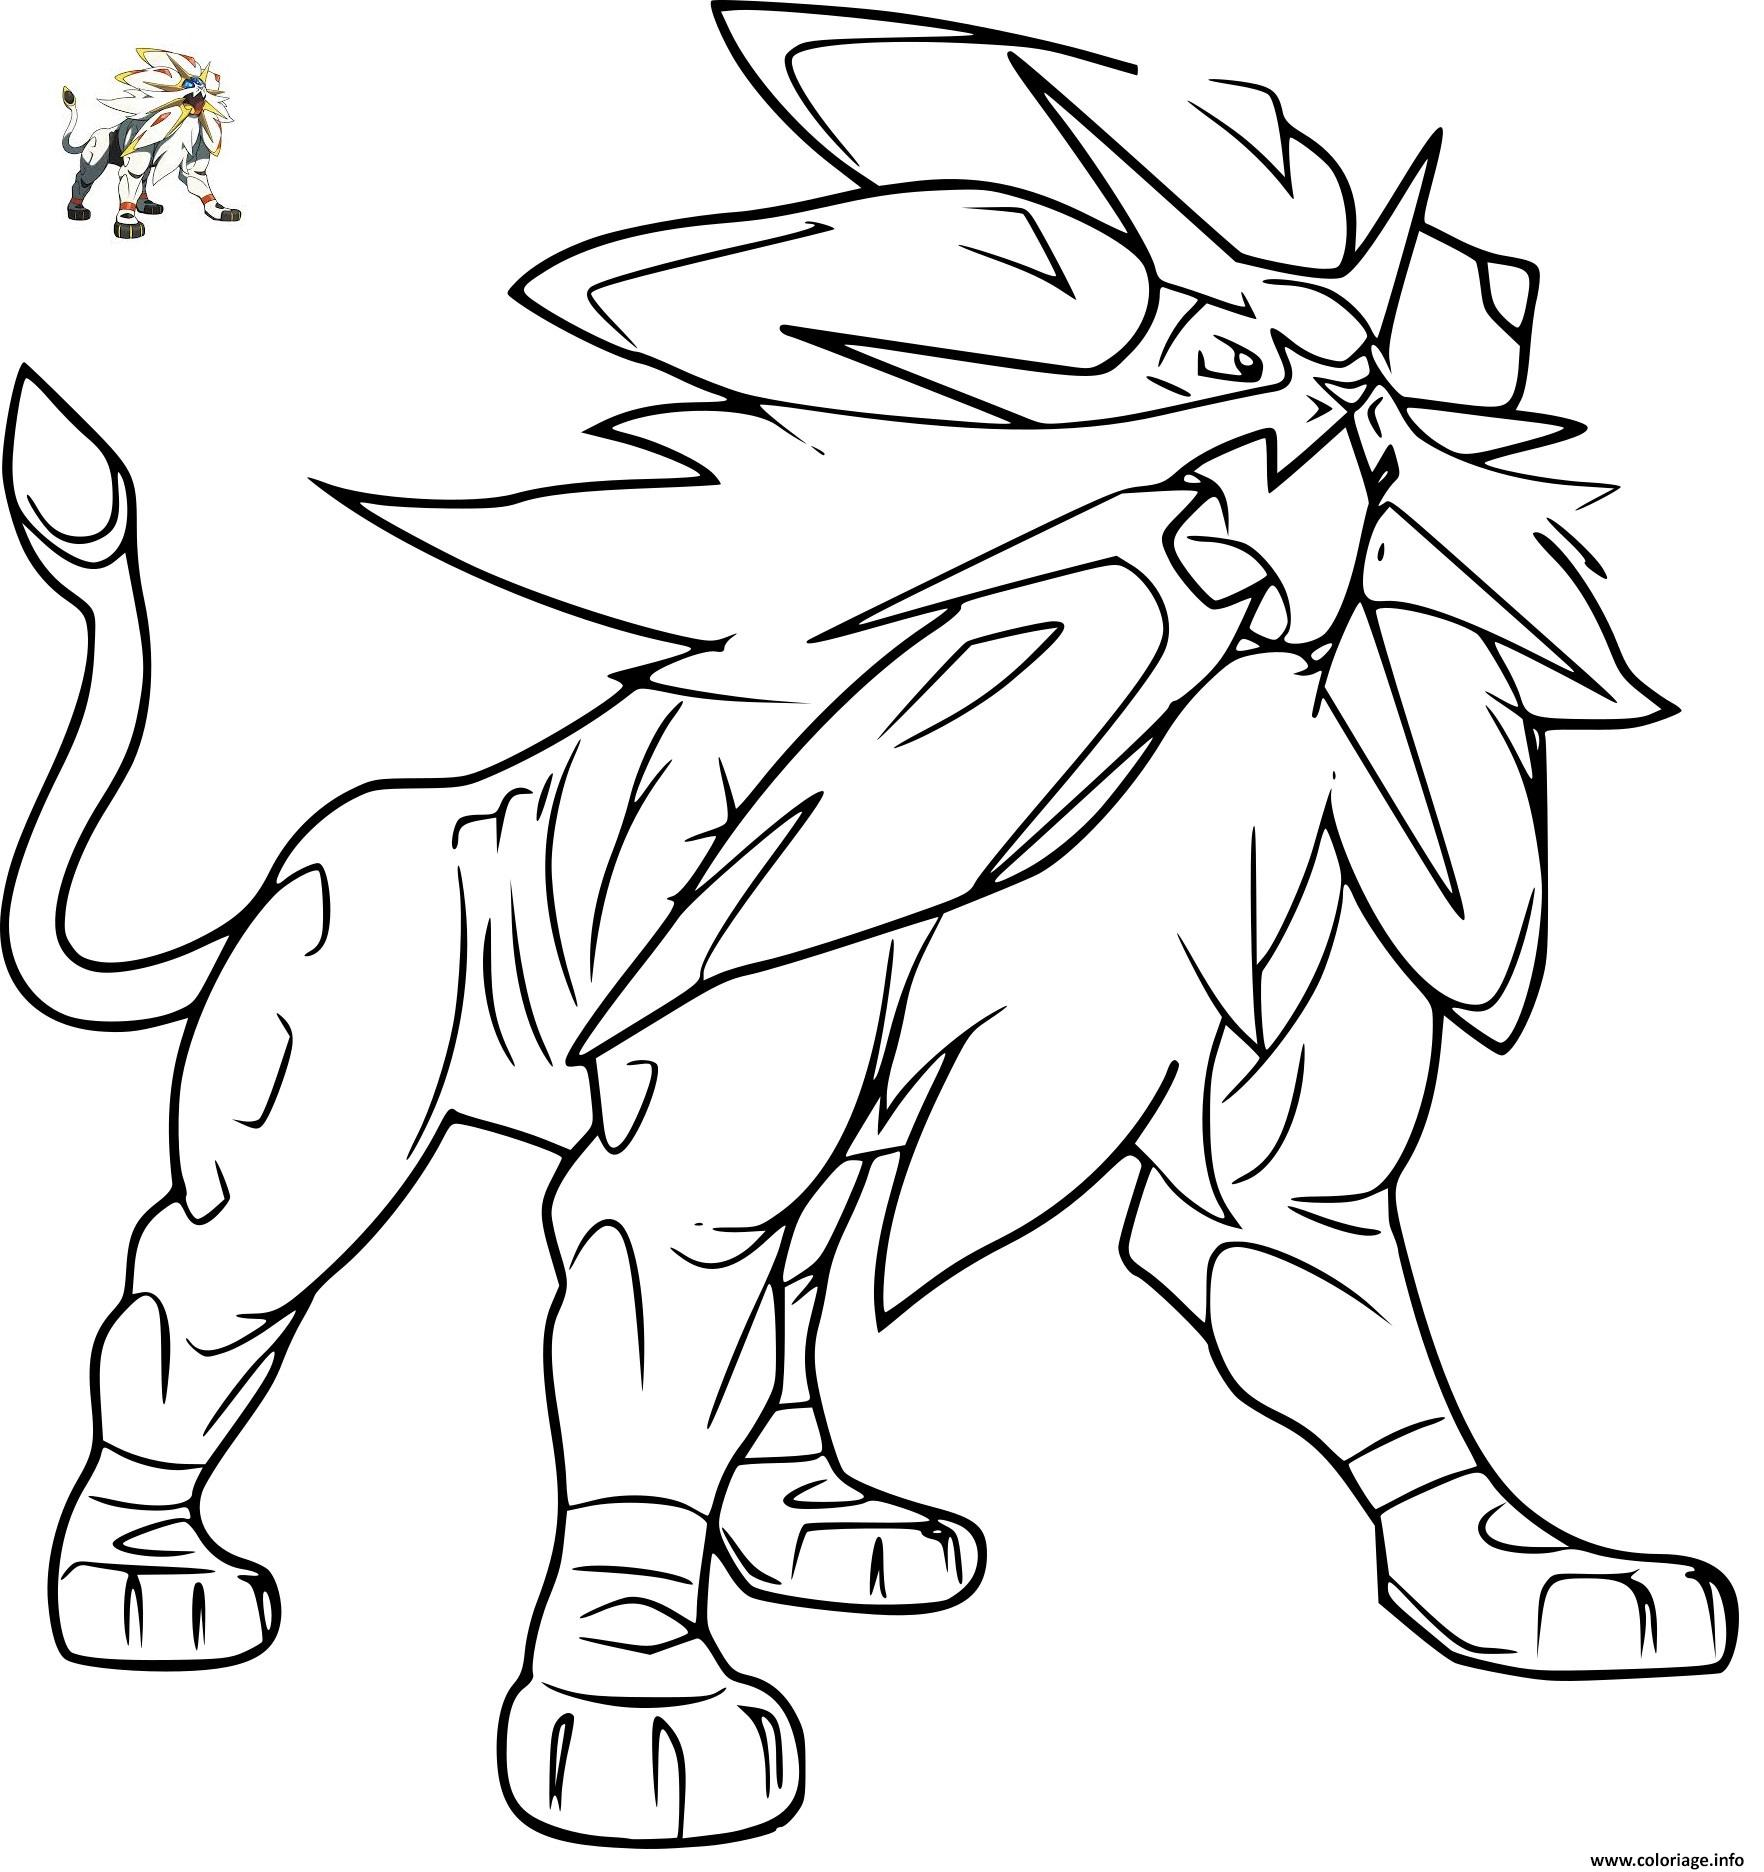 Coloriage pokemon solgaleo gx - Coloriage de pokemon a imprimer ...